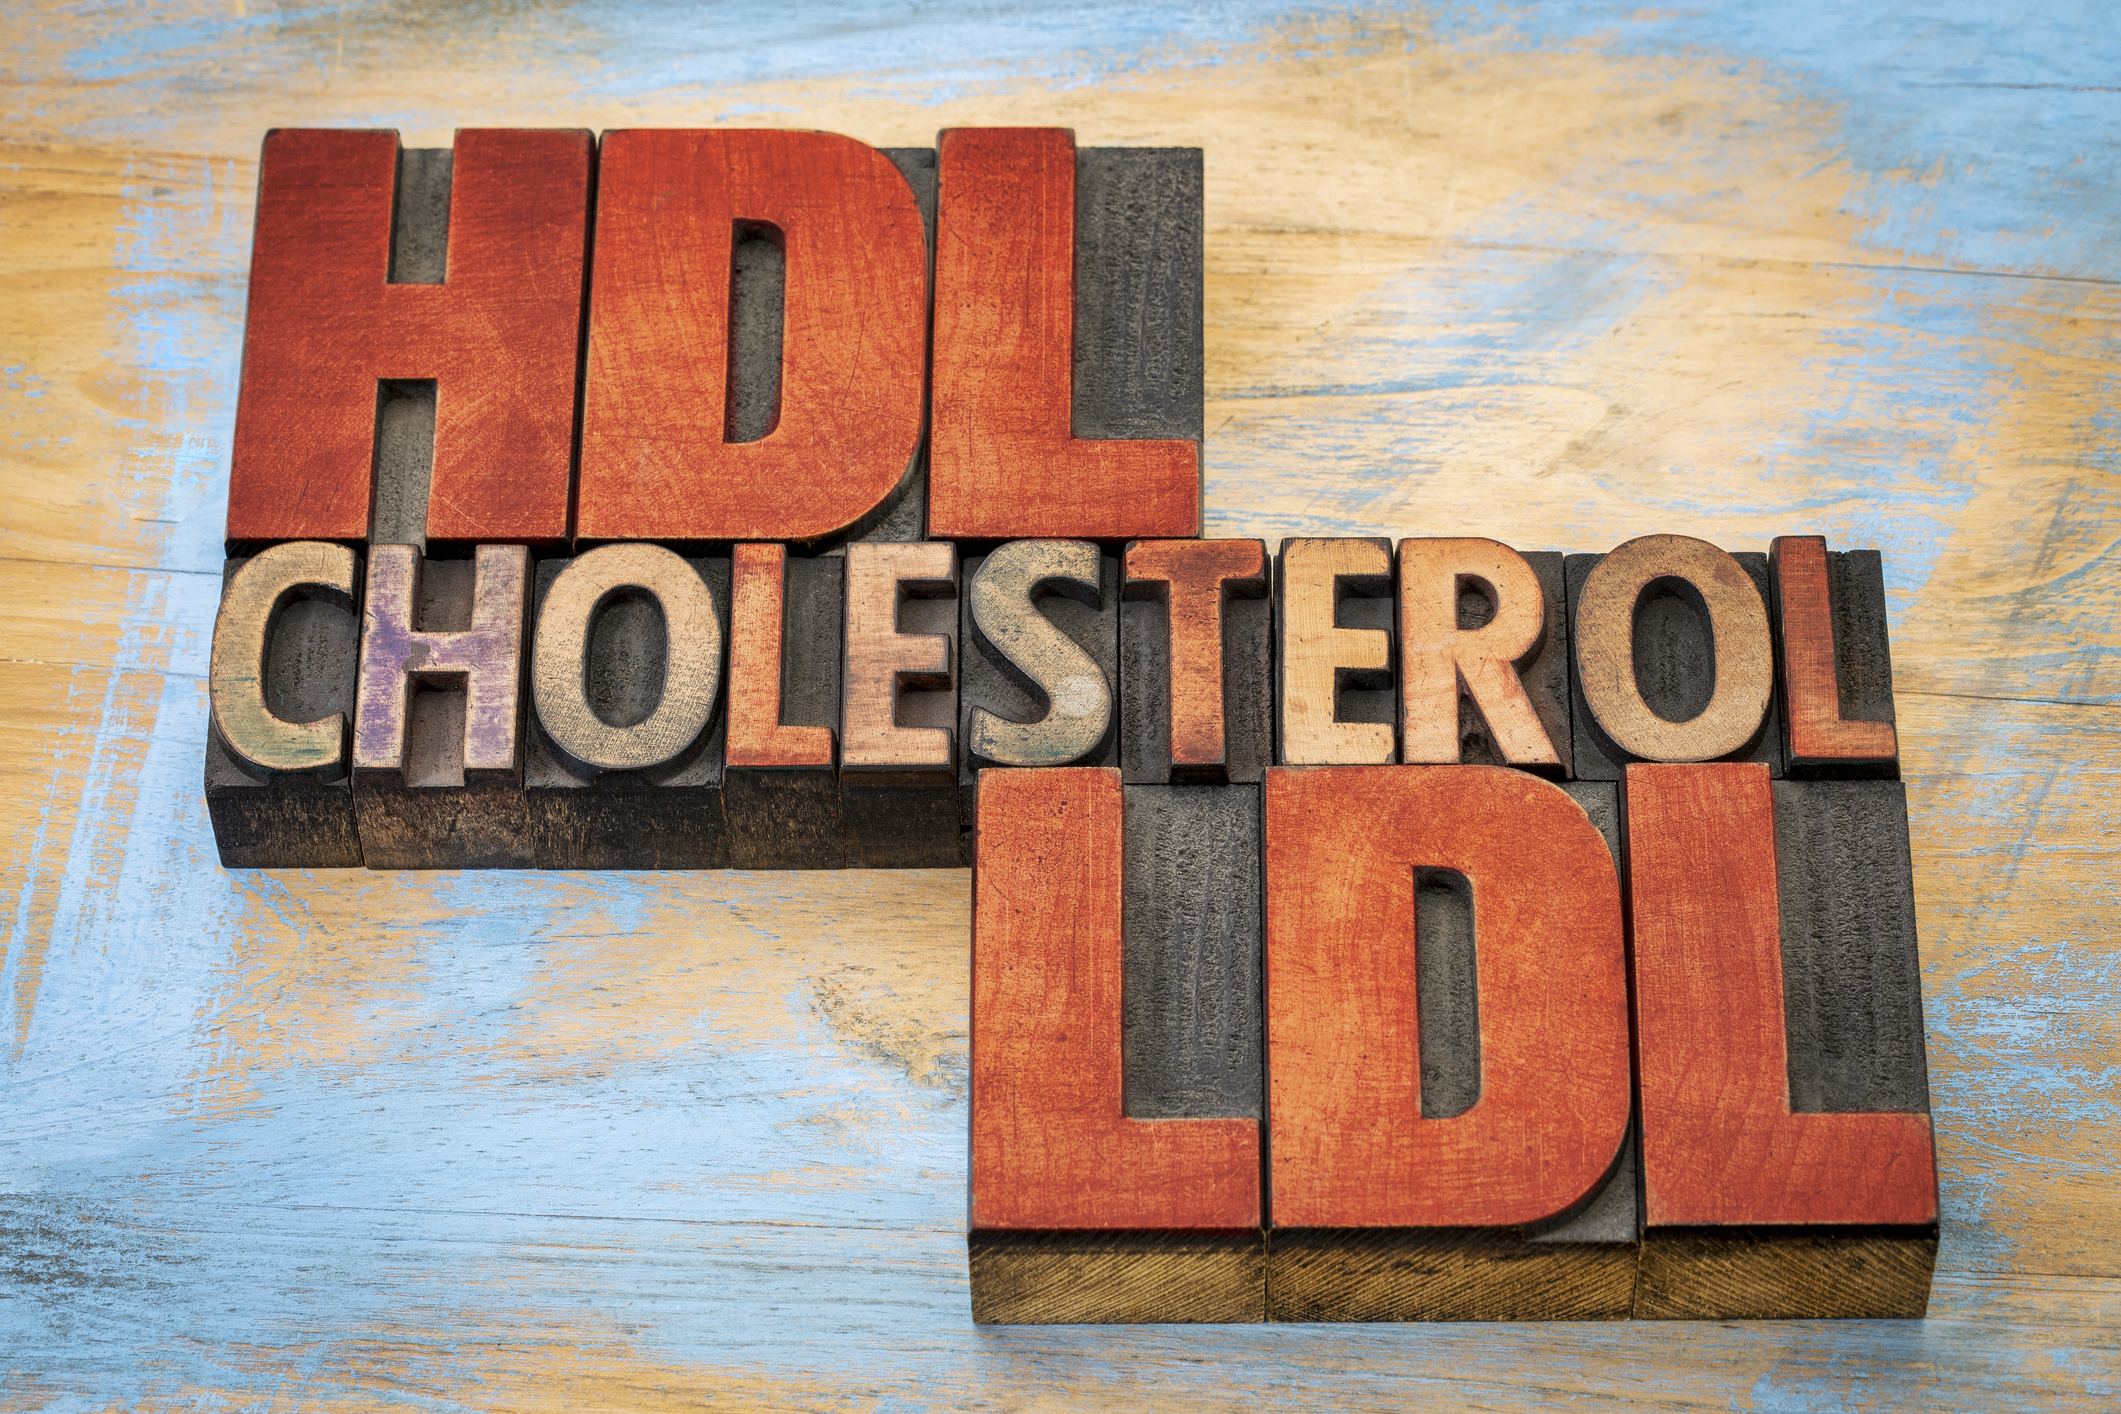 HDL and LDL cholesterol word abstract